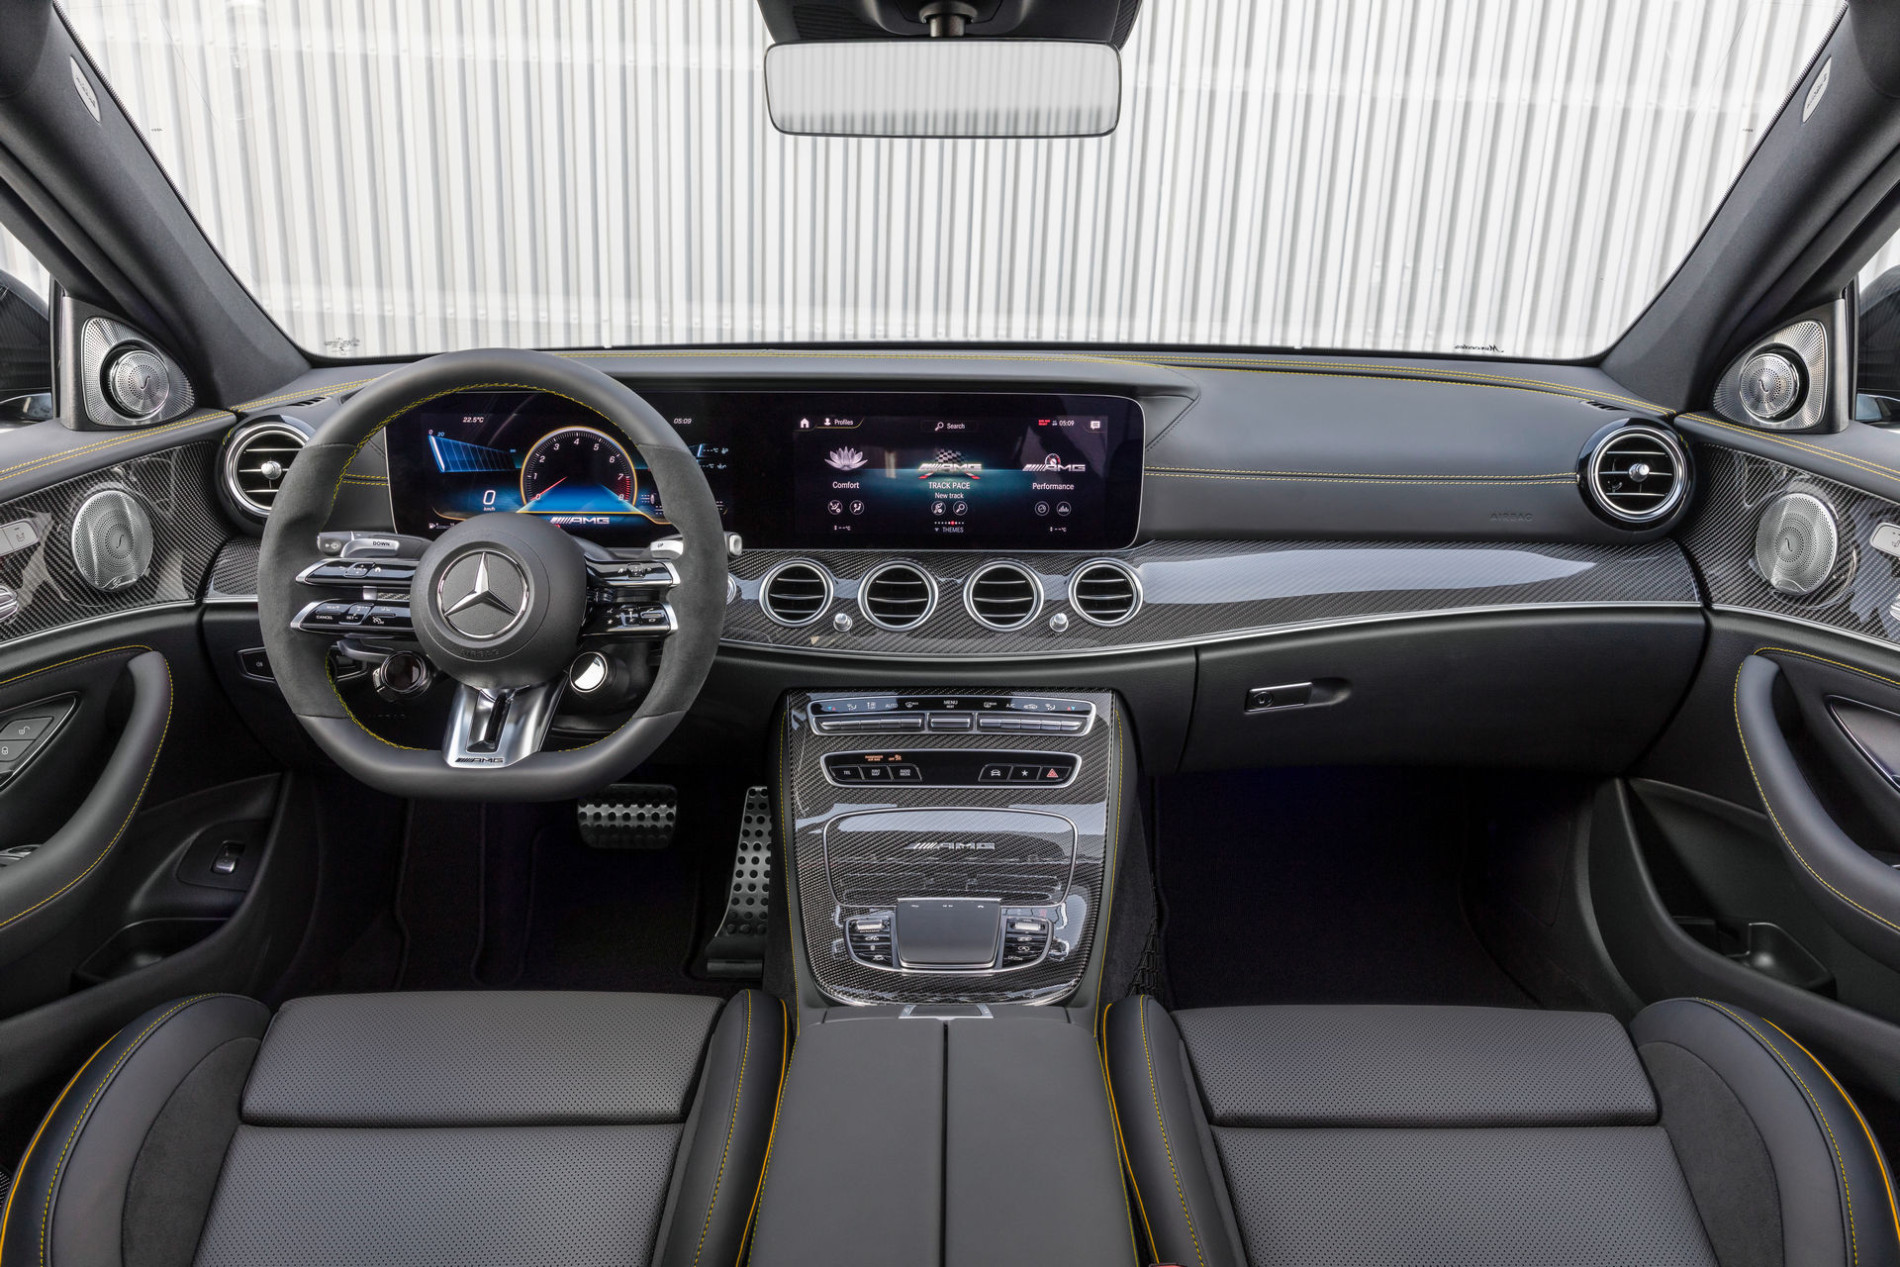 Mercedes E63 AMG Facelift - Mercedes E63 AMG Facelift